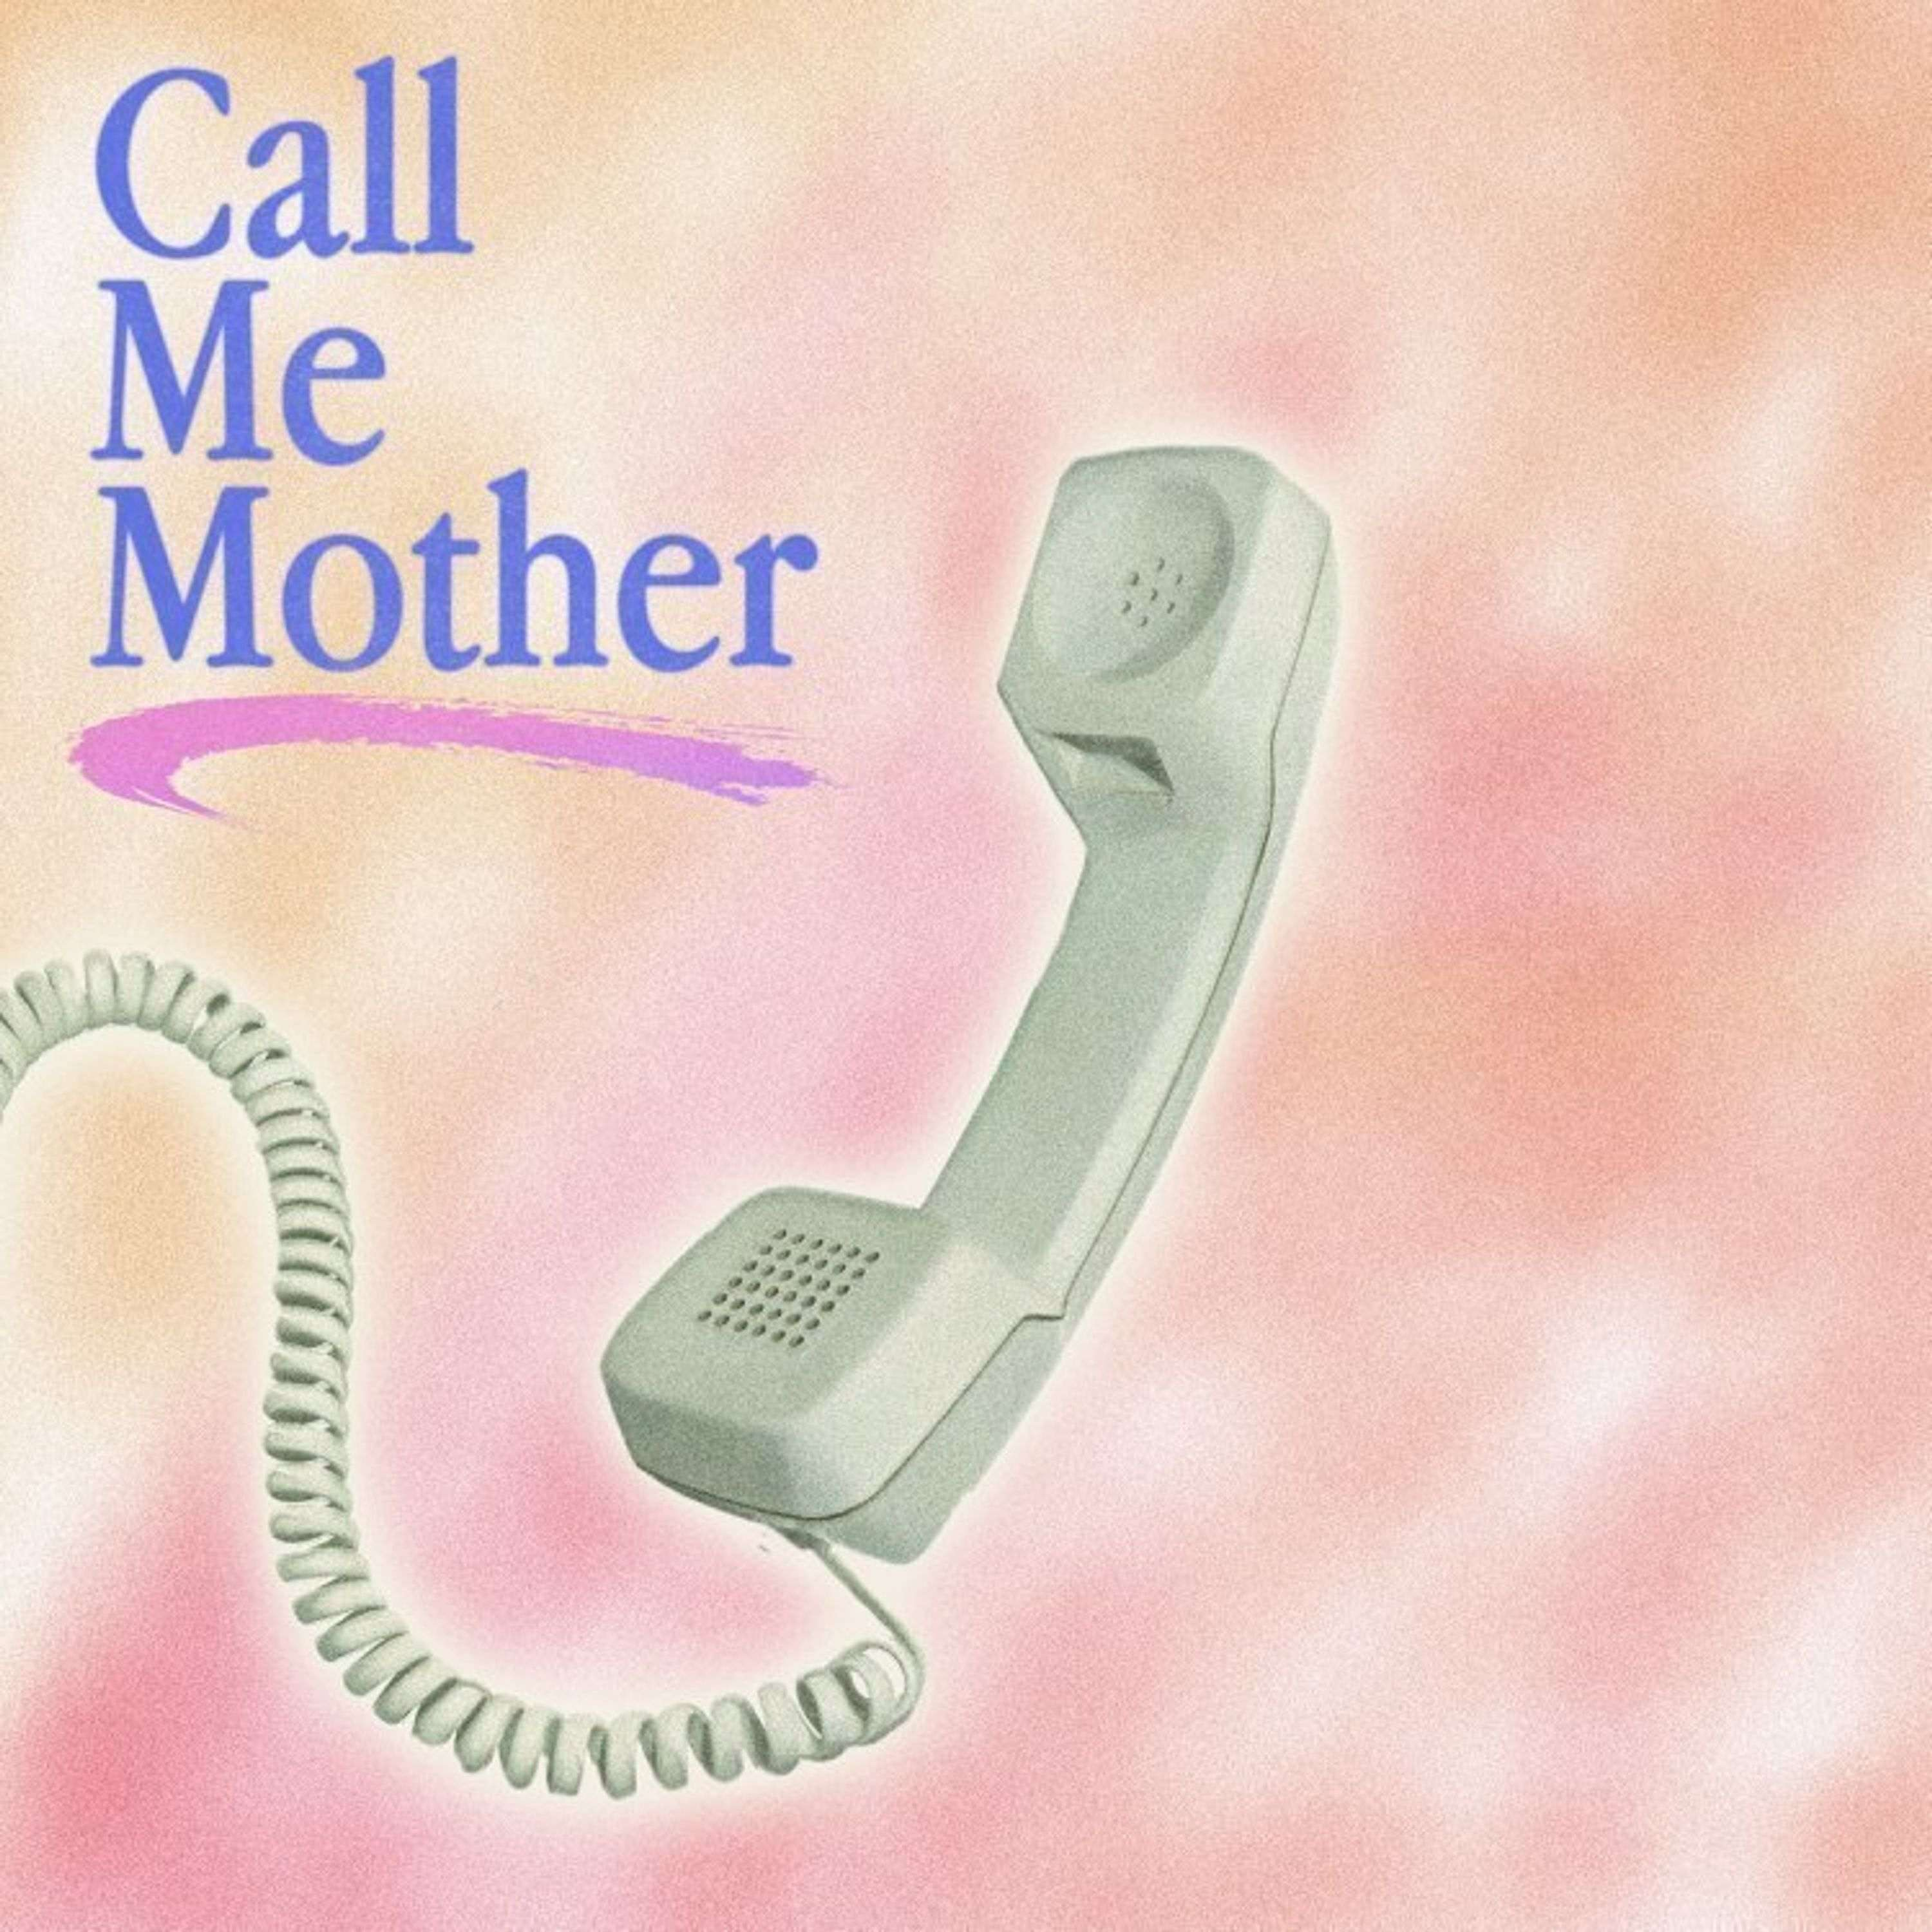 Call Me Mother podcast show image